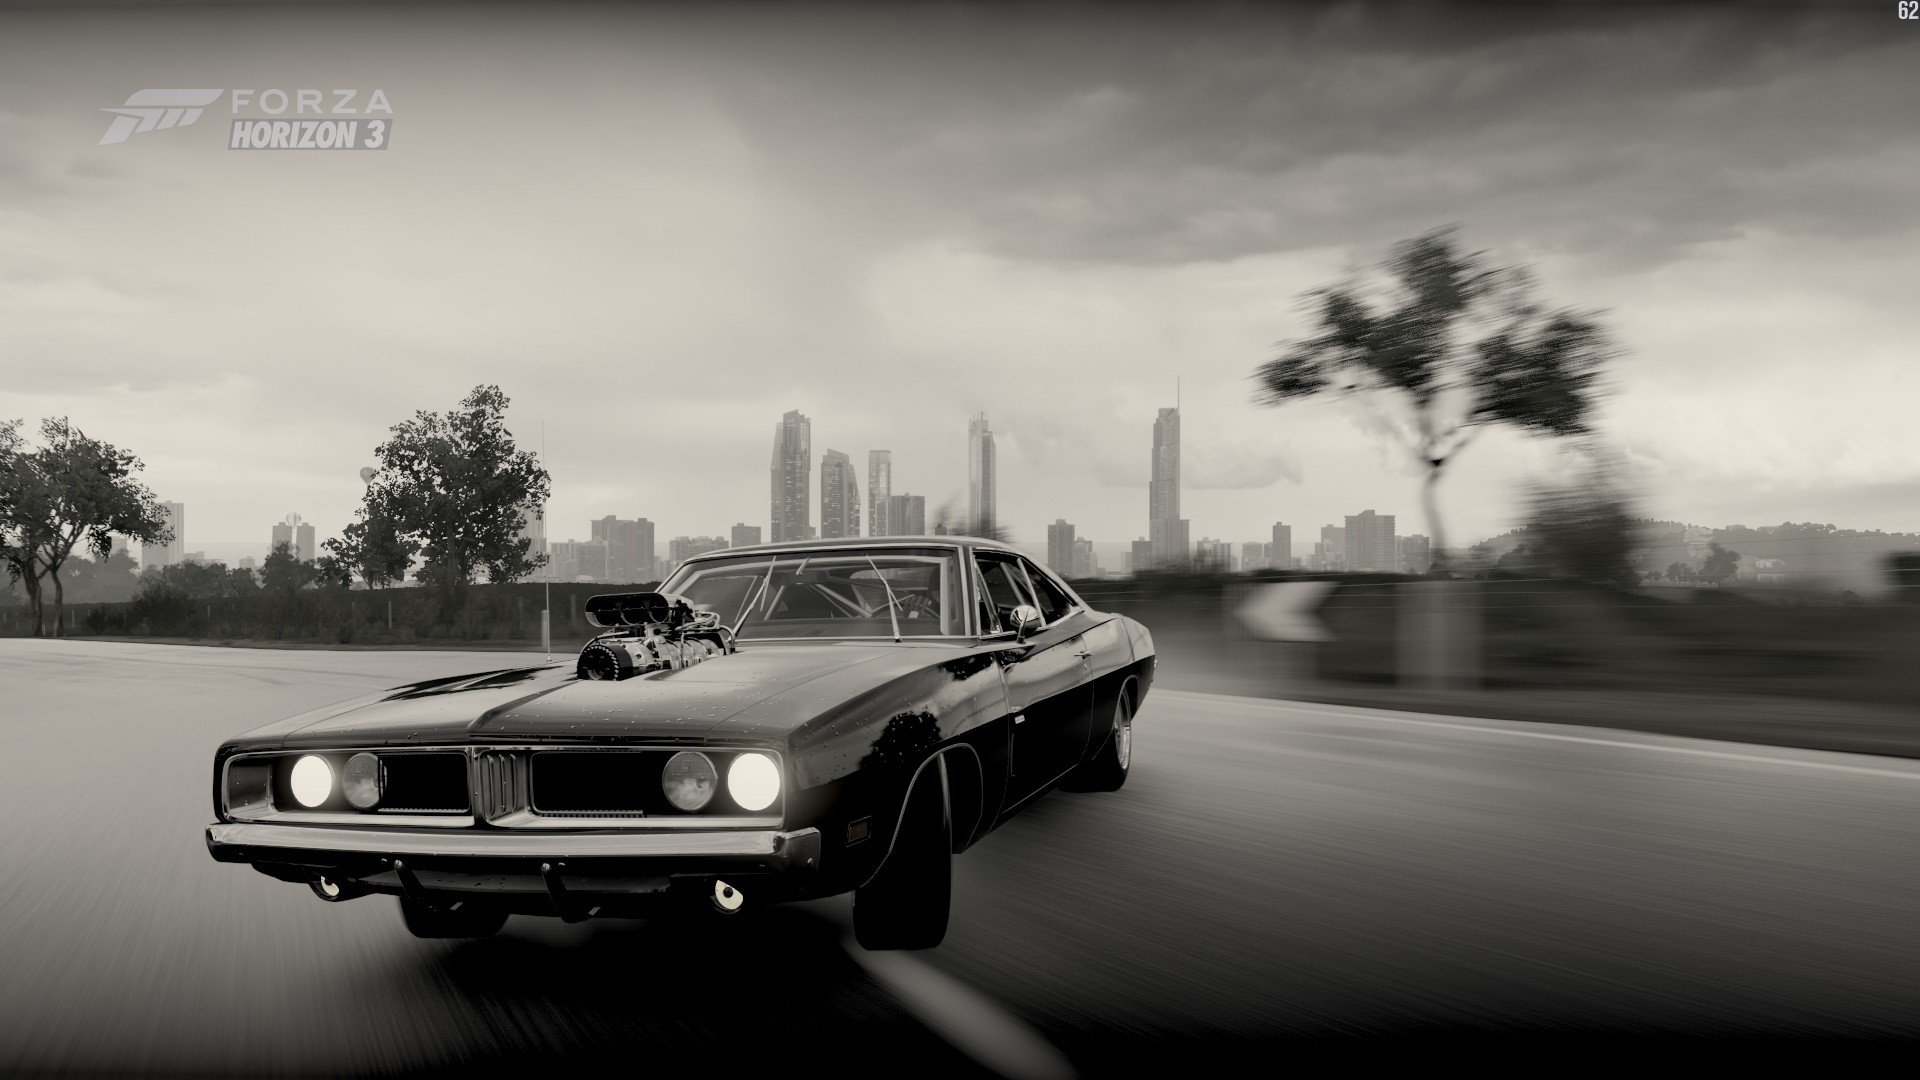 Forza Horizon 3 Wallpapers (90+ background pictures)